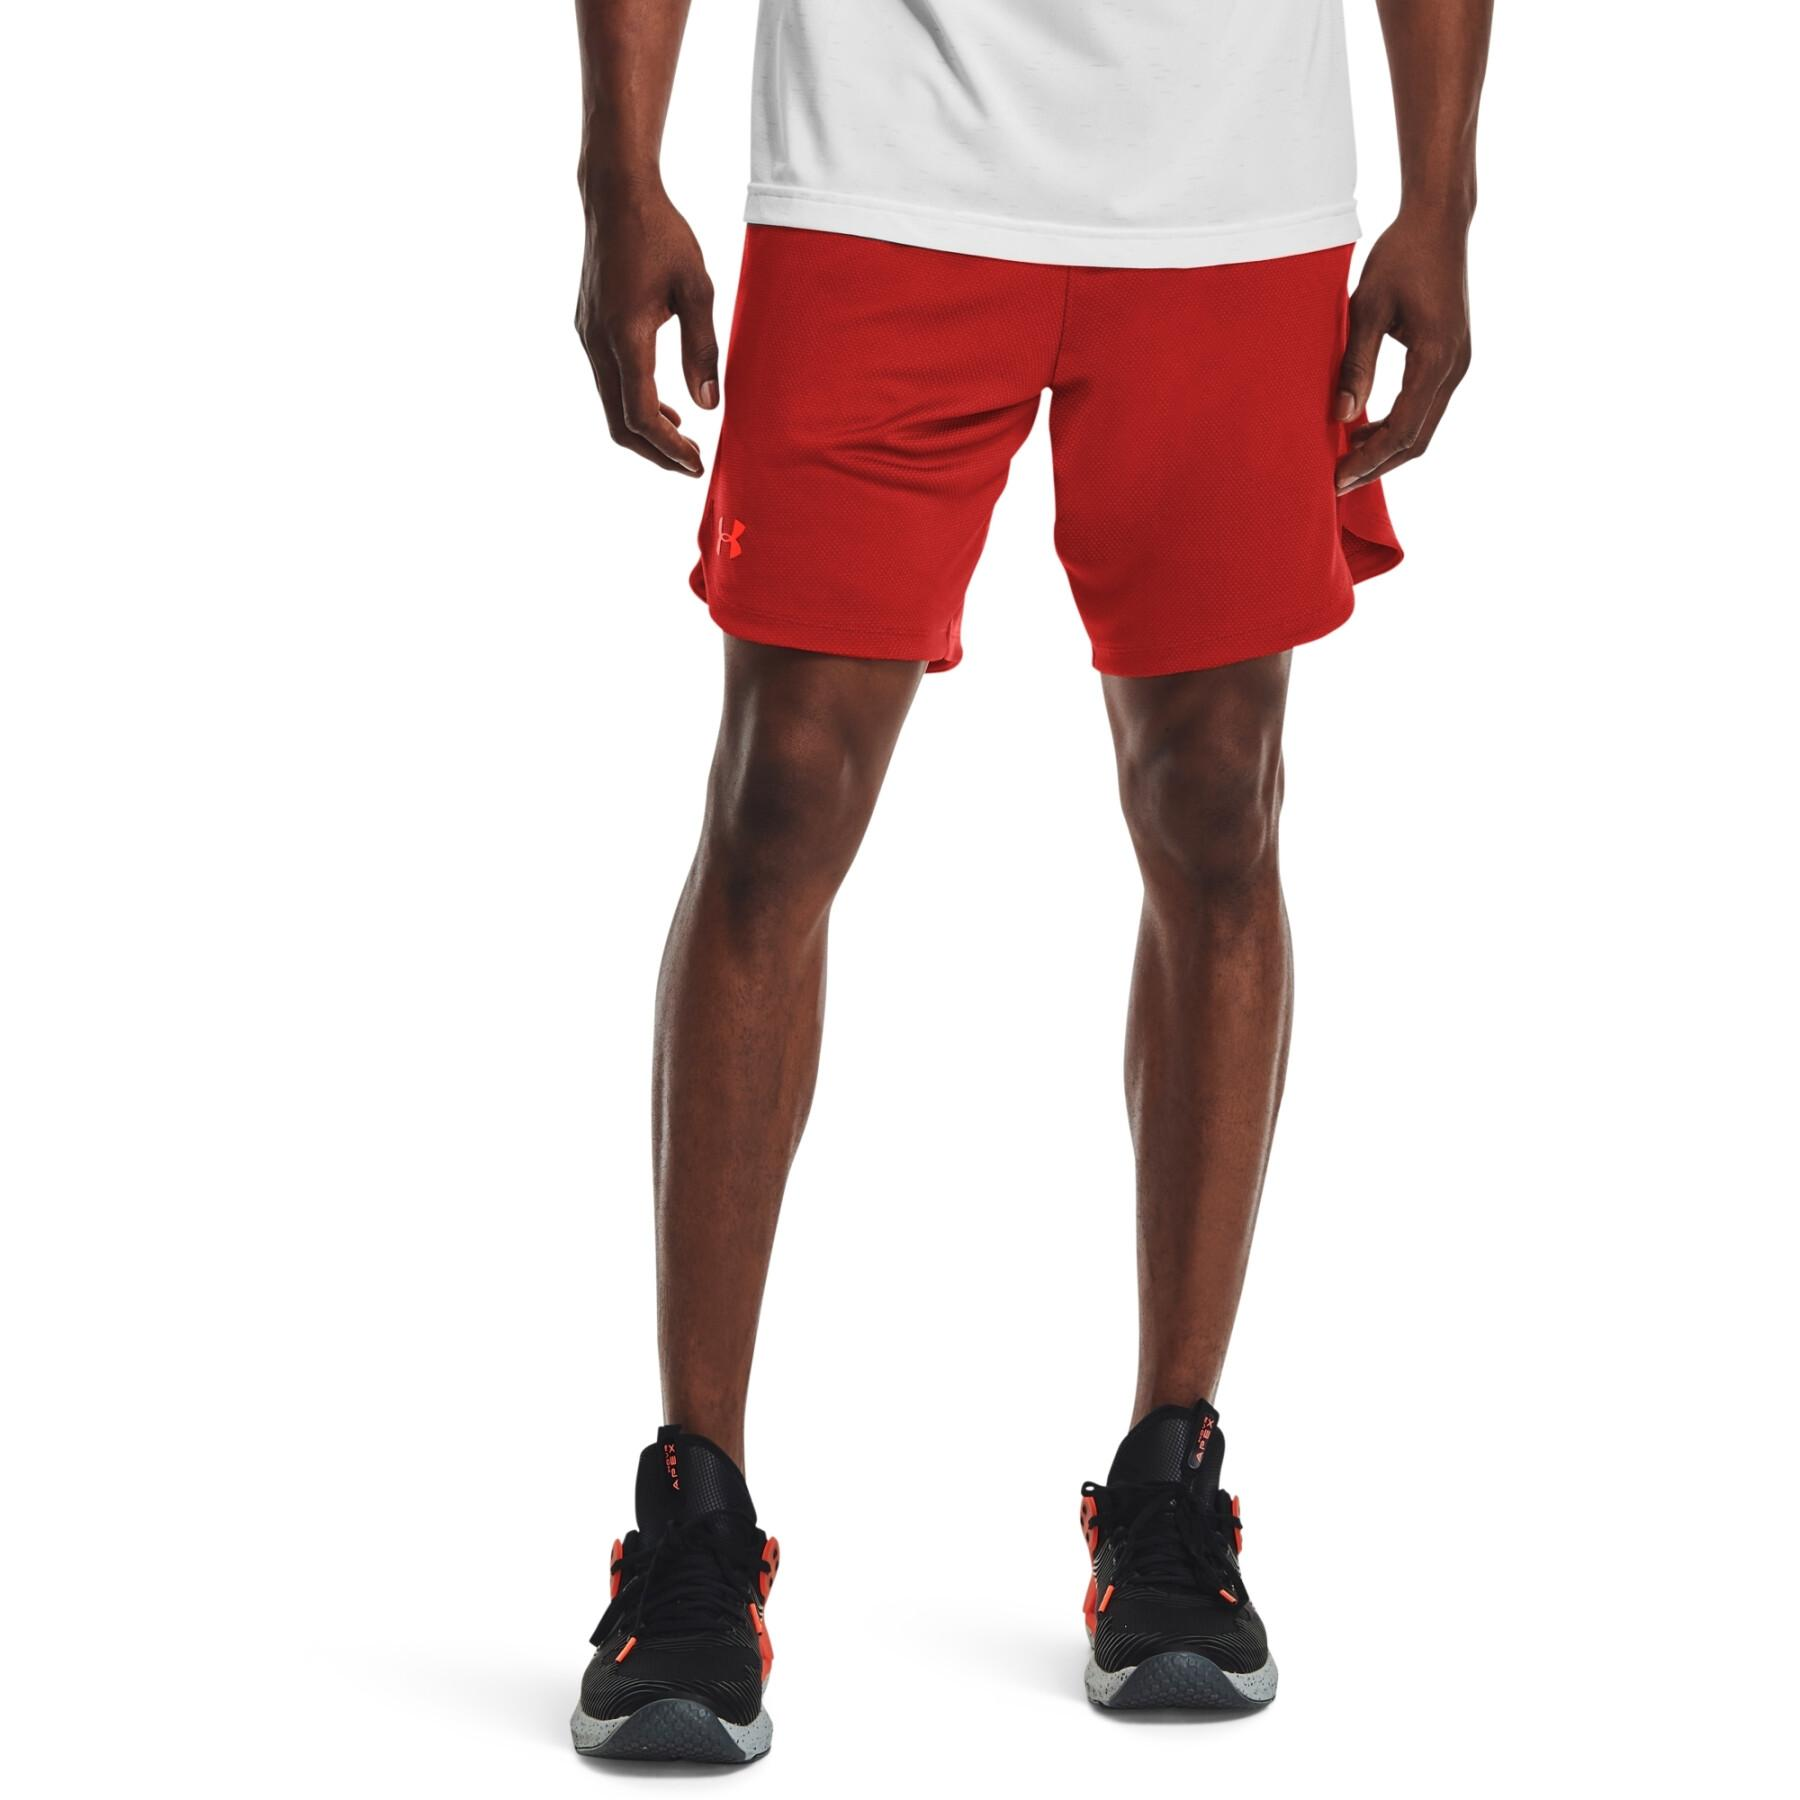 Training shorts Under Armour Knit Performance